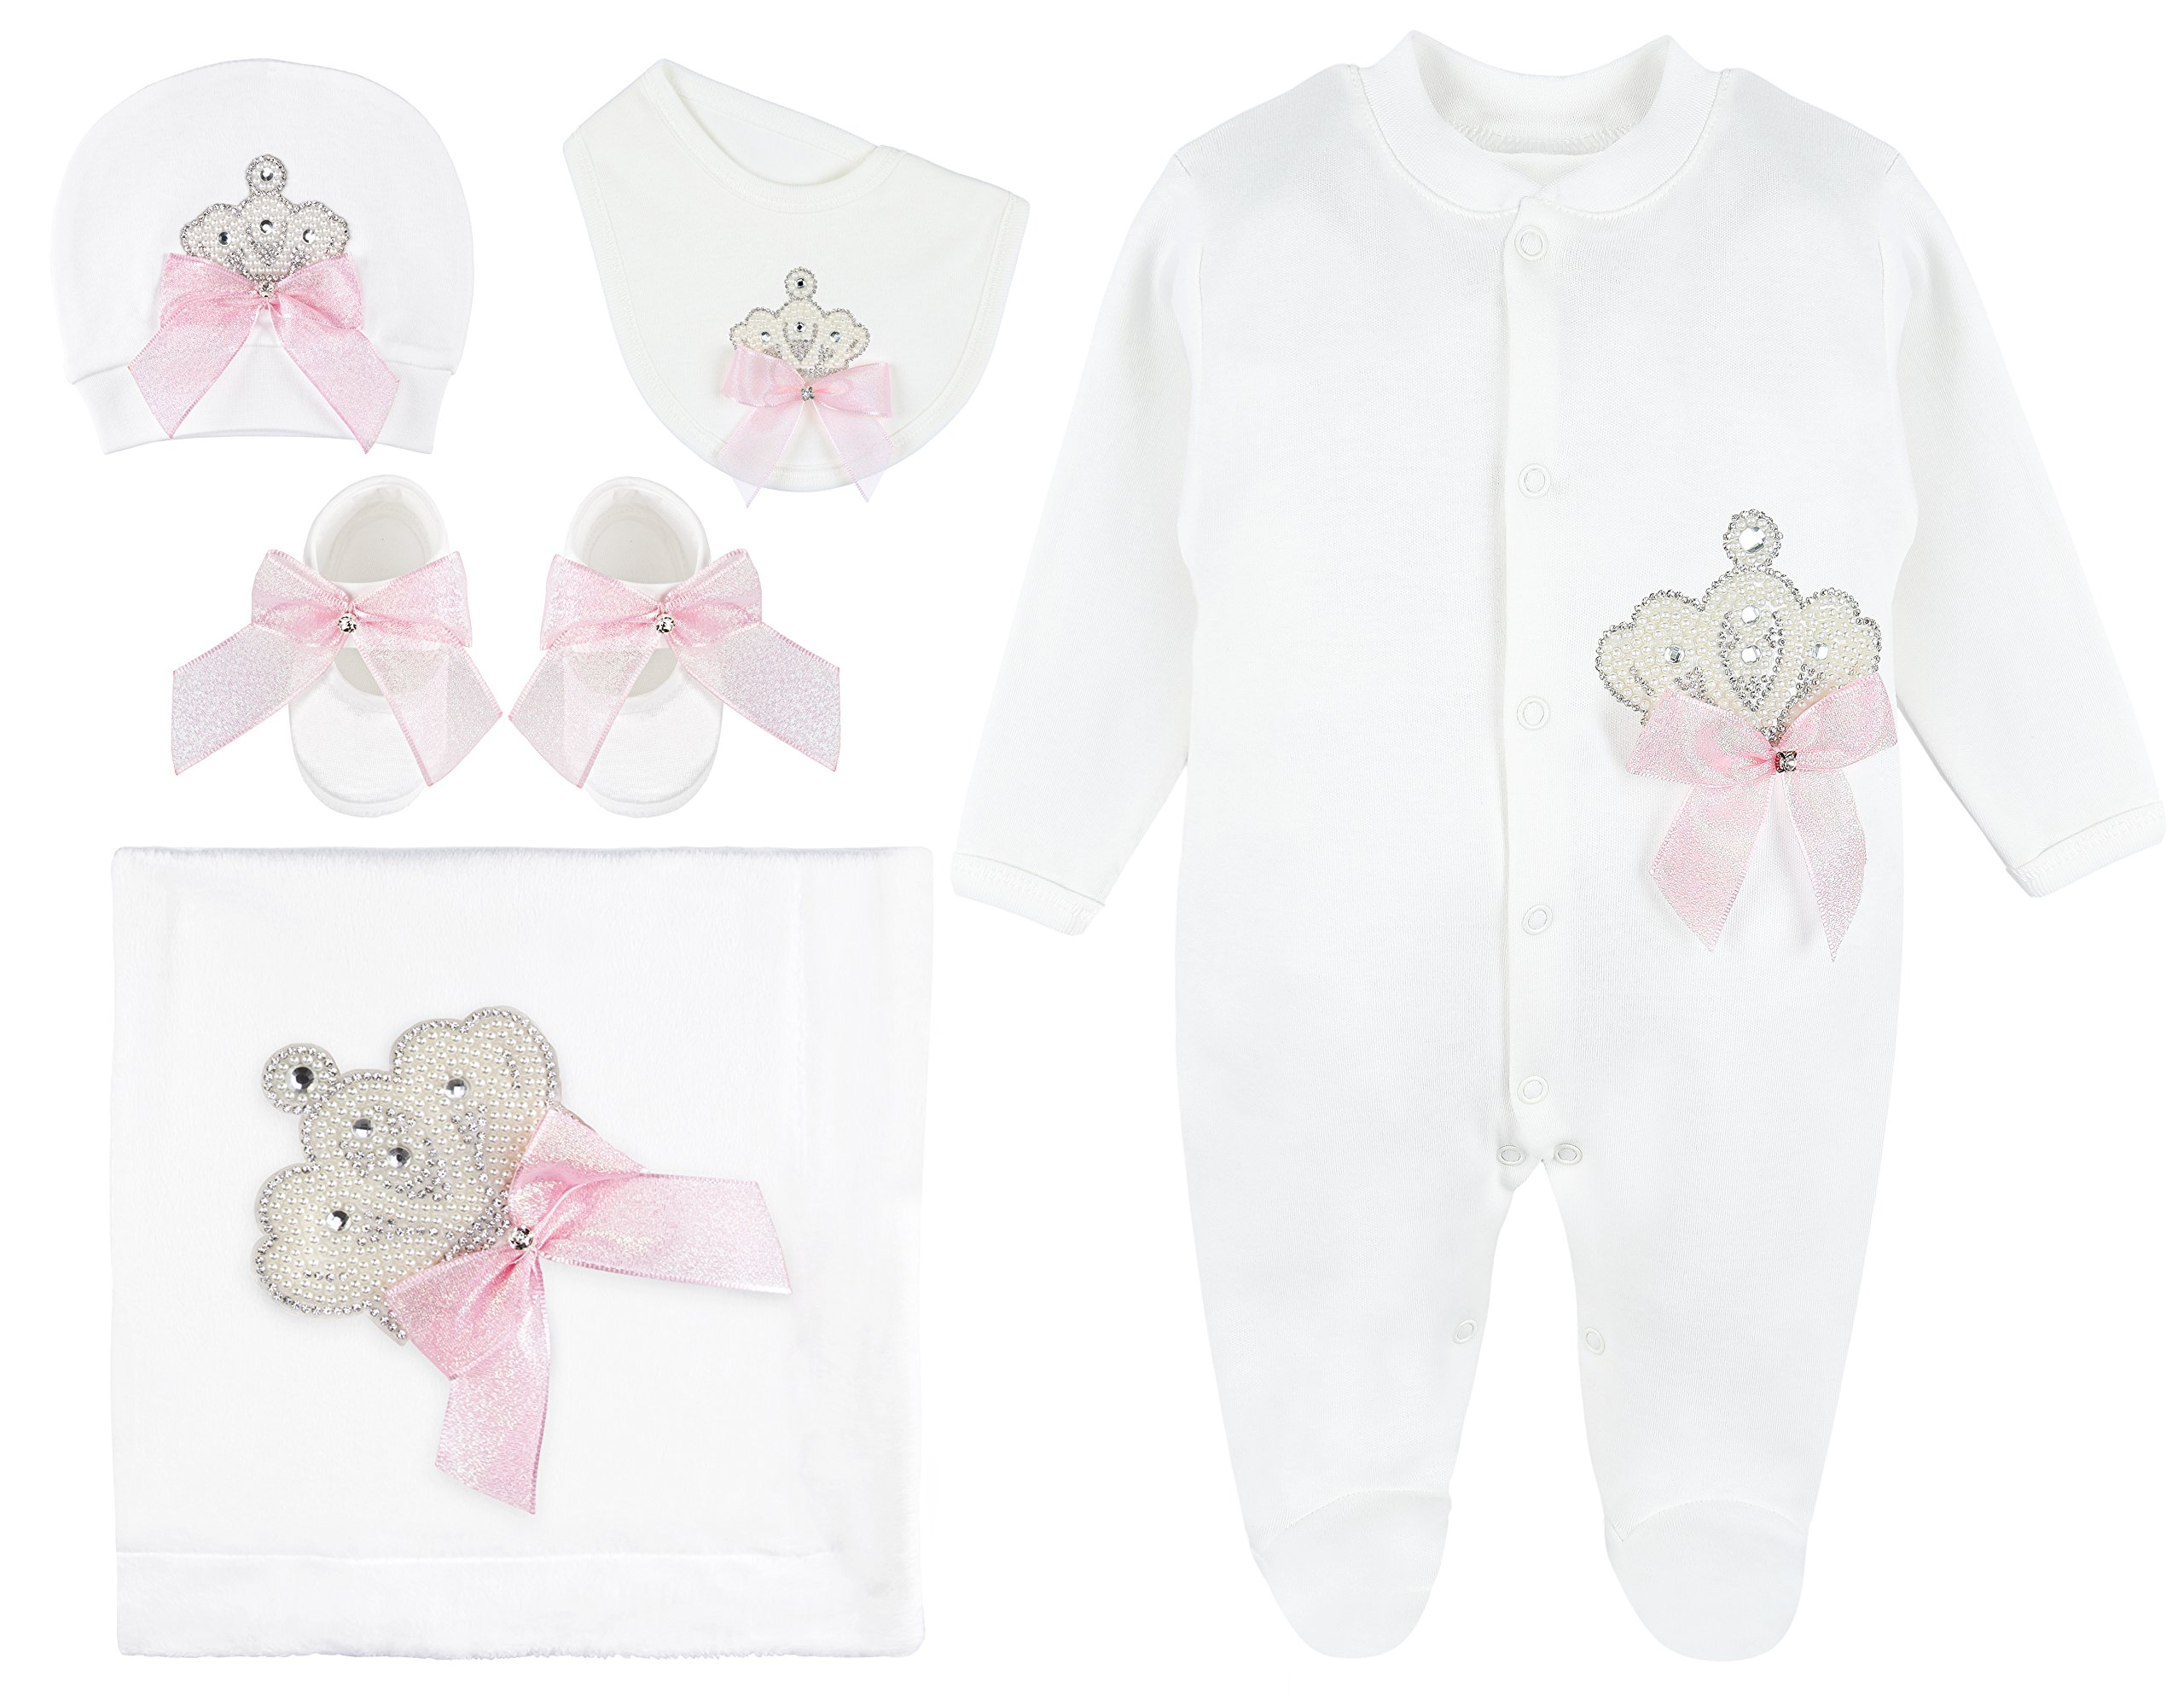 Lilax Baby Girl Jeweled Crown Pink Shimmer Layette 5 Piece Gift Set 0-3 Months